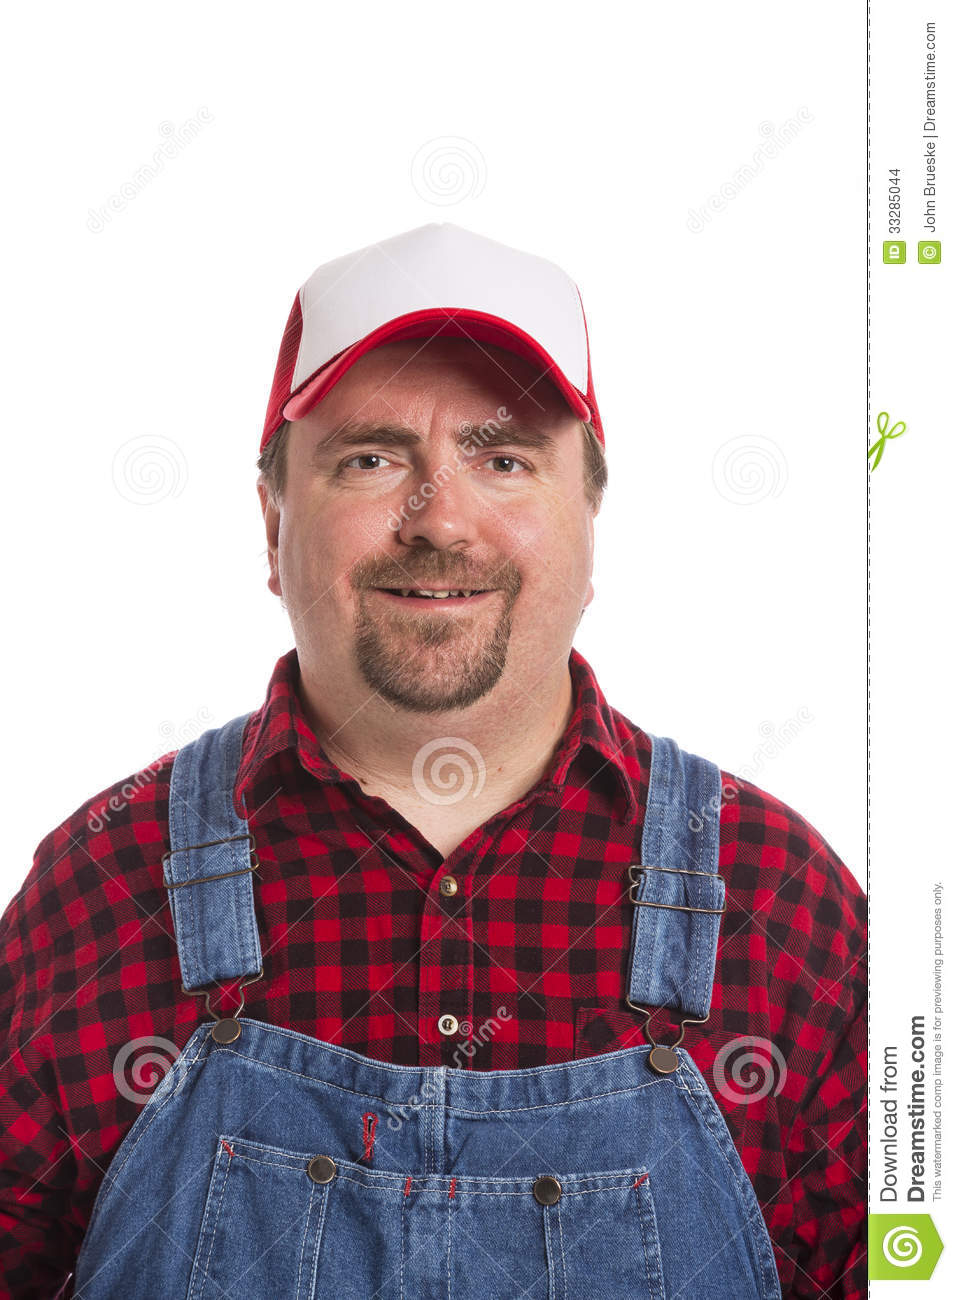 523fd8b51b A man wearing a red and black flannel shirt with bib overalls and a hat  with a white front.